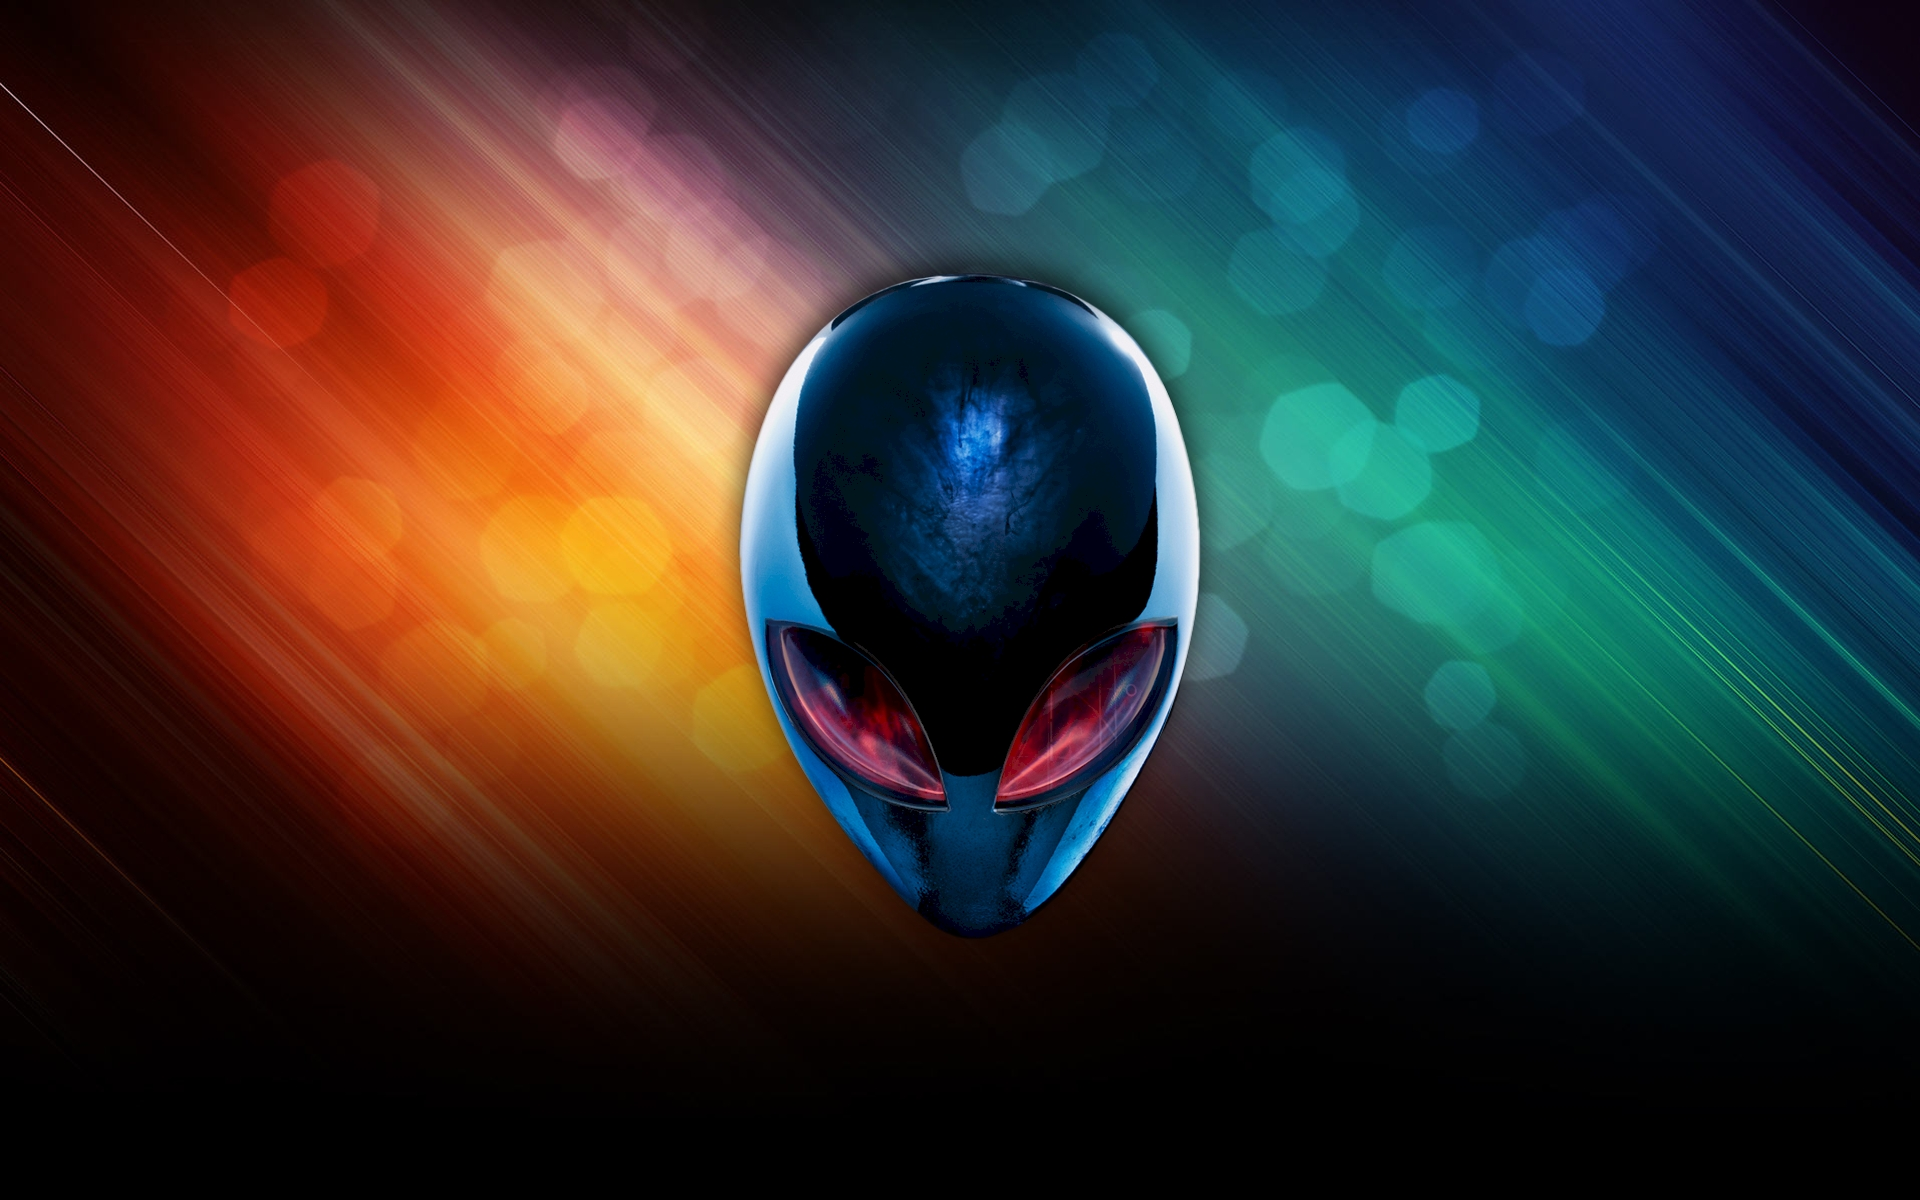 Alienware Wallpapers on dell xps gaming pc